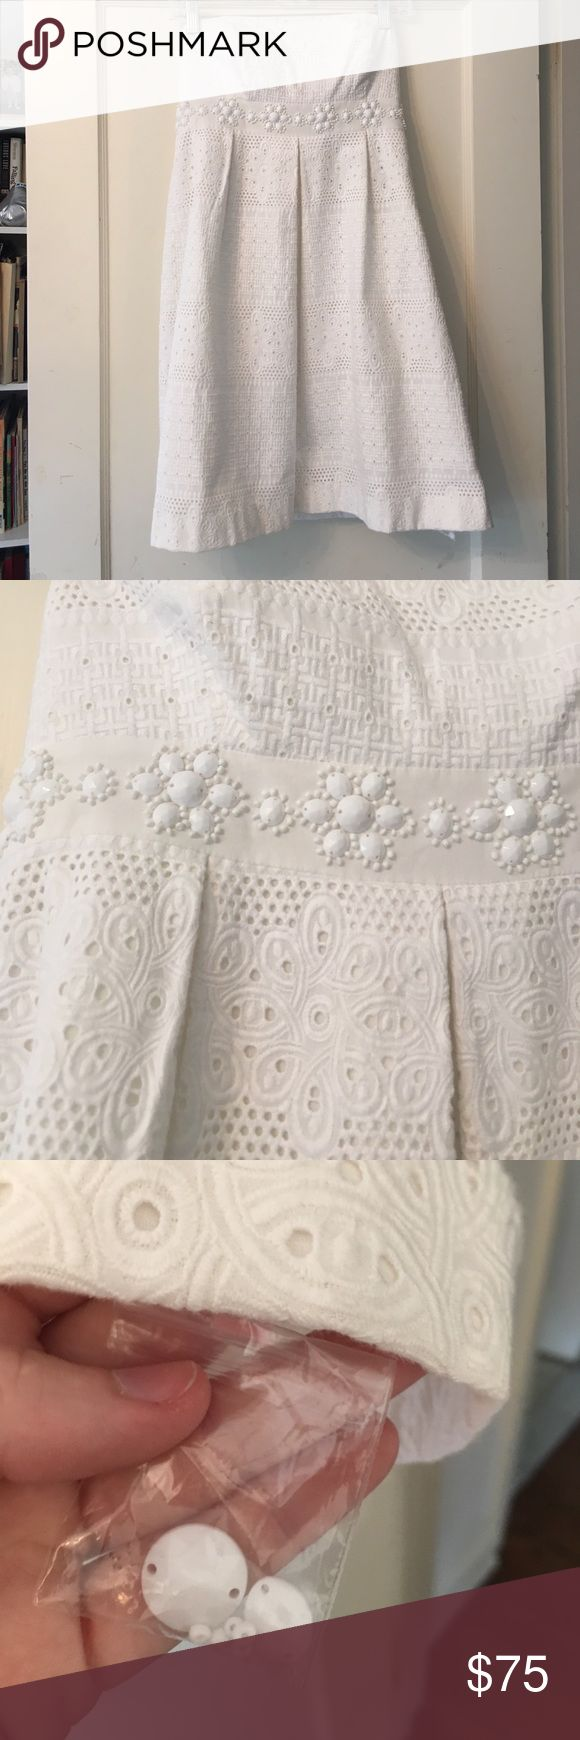 NWOT Lilly Pulitzer strapless eyelet white dress 2 Never worn! Purchased by my sister and it has hung in the closet since. Extra beads are still attached! Can hand wash before purchasing Lilly Pulitzer Dresses Strapless